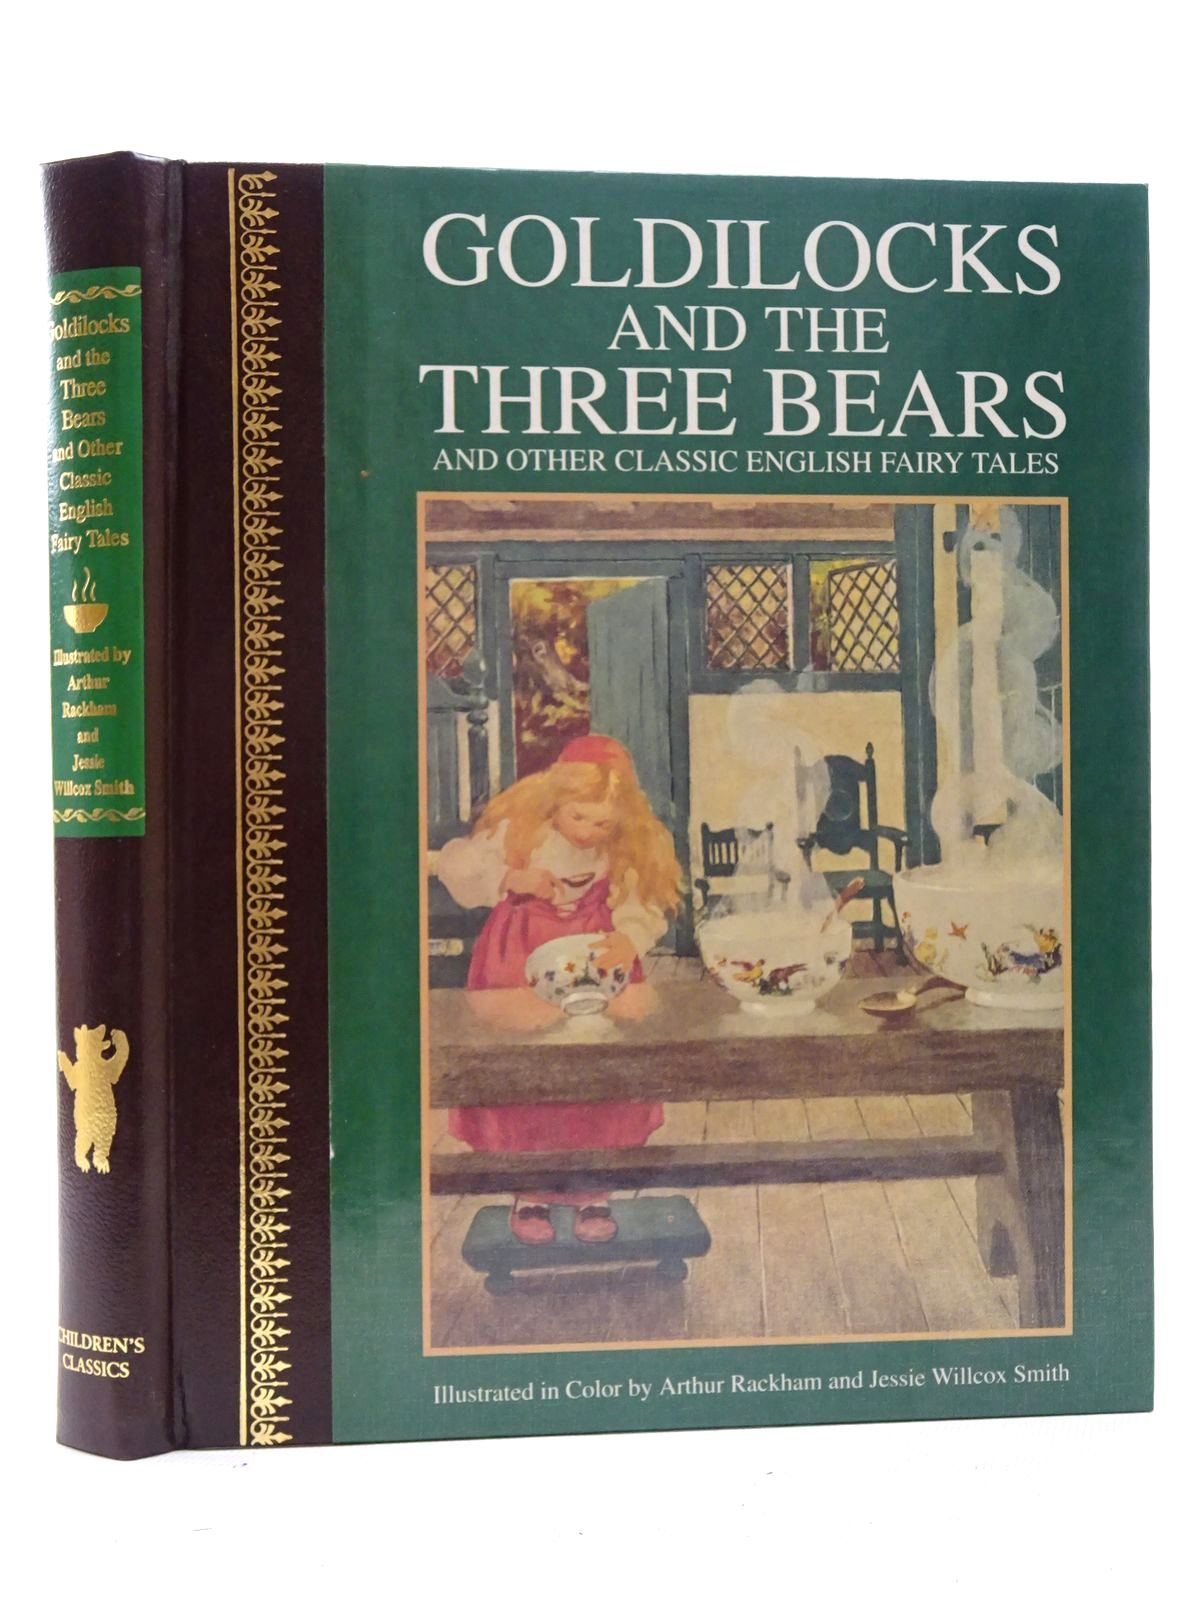 Photo of GOLDILOCKS AND THE THREE BEARS AND OTHER CLASSIC ENGLISH FAIRY TALES written by Steel, Flora Annie illustrated by Rackham, Arthur Smith, Jessie Willcox published by Children's Classics (STOCK CODE: 1816150)  for sale by Stella & Rose's Books